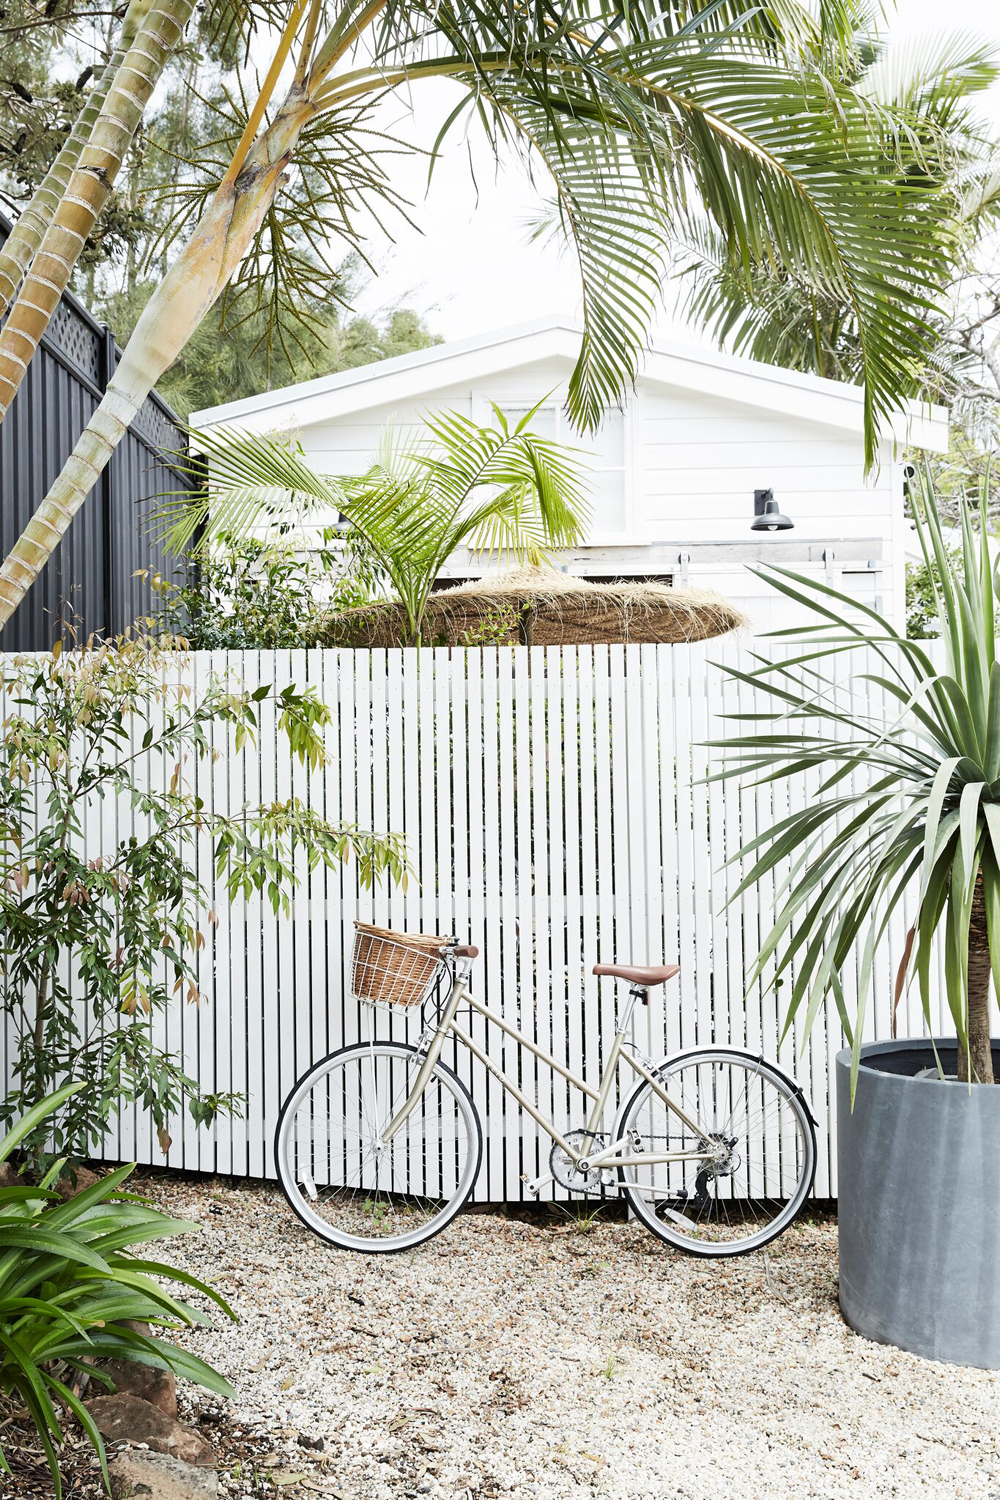 The Bower is possibly one of the best hotels in Byron Bay, Australia. Today we take a look inside & see how to get the same look yourself at home.